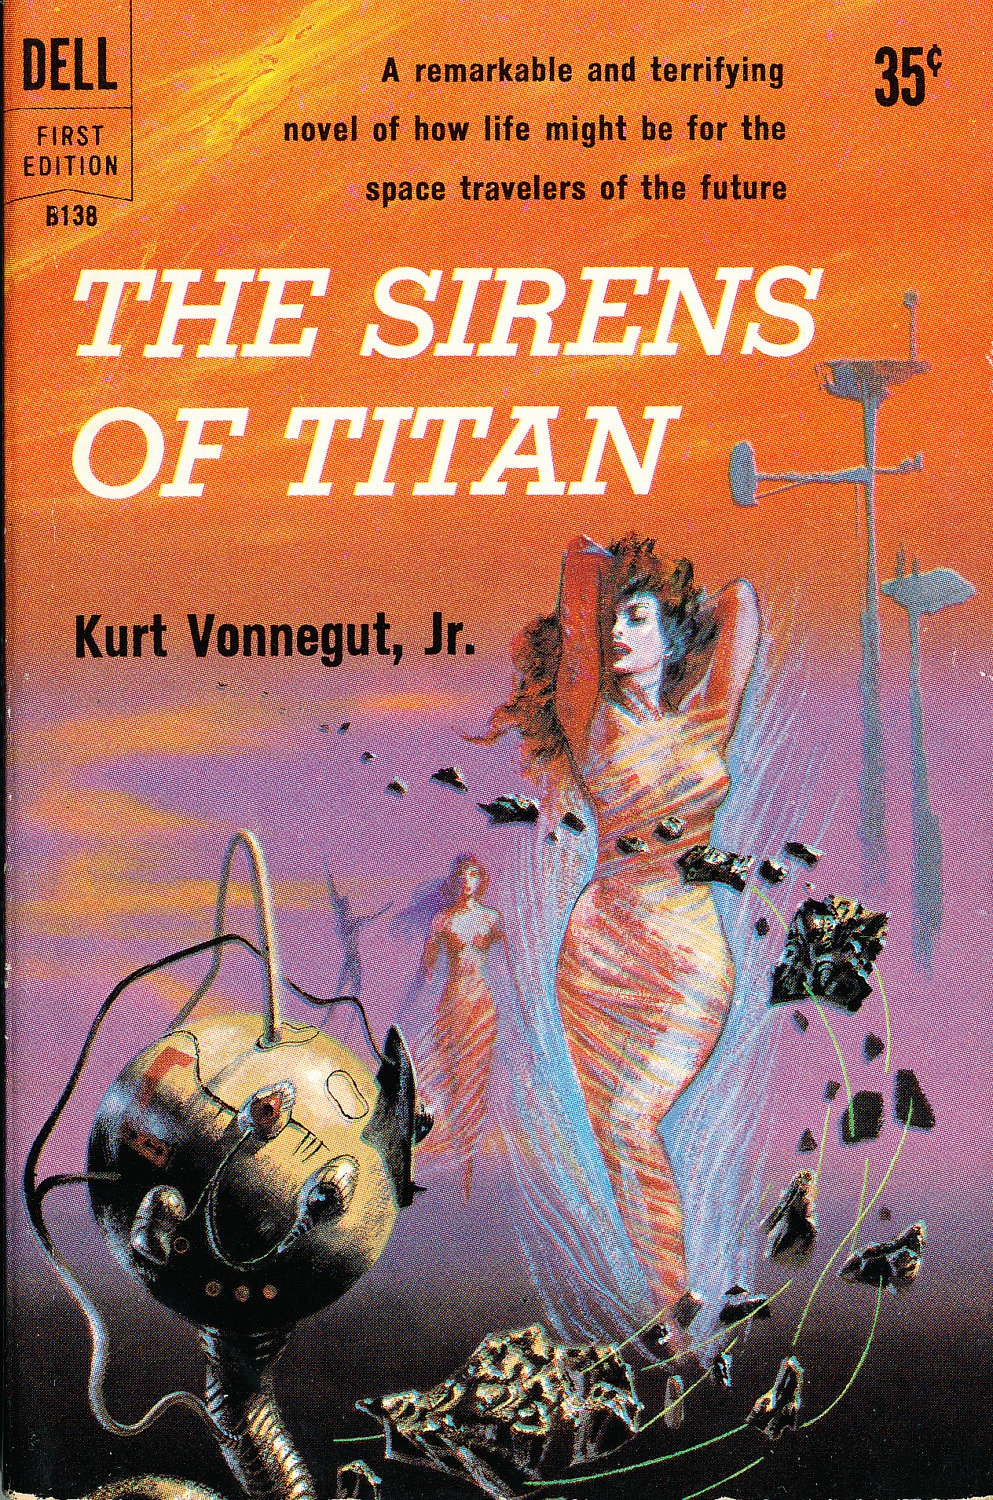 vonnegut sirens_of_titan week in pop.jpg